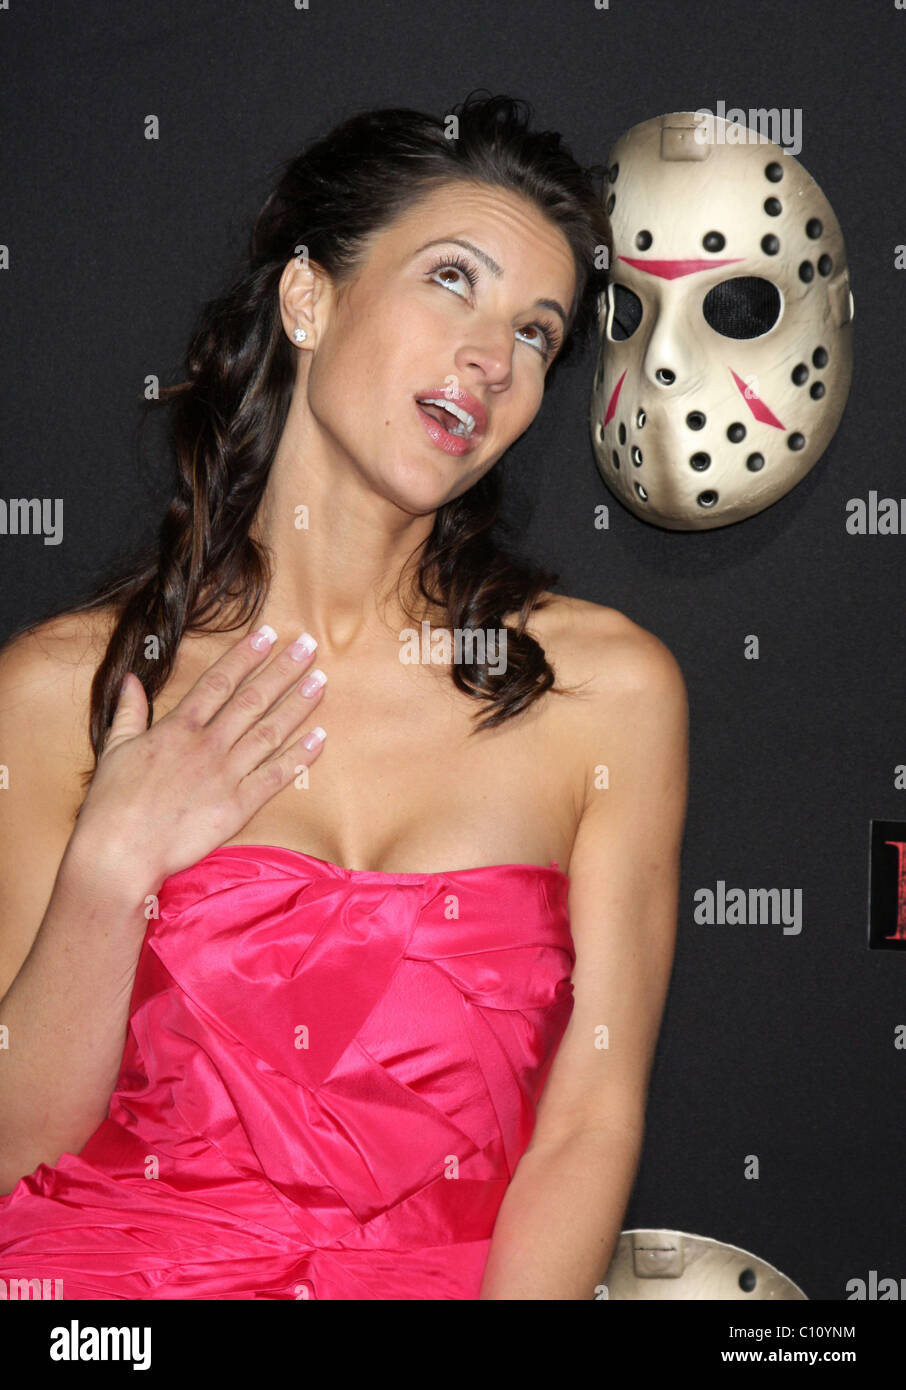 America Olivo 'Friday The 13th' Los Angeles Premiere Grauman's Chinese Theatre - Arrivals Hollywood, California Stock Photo